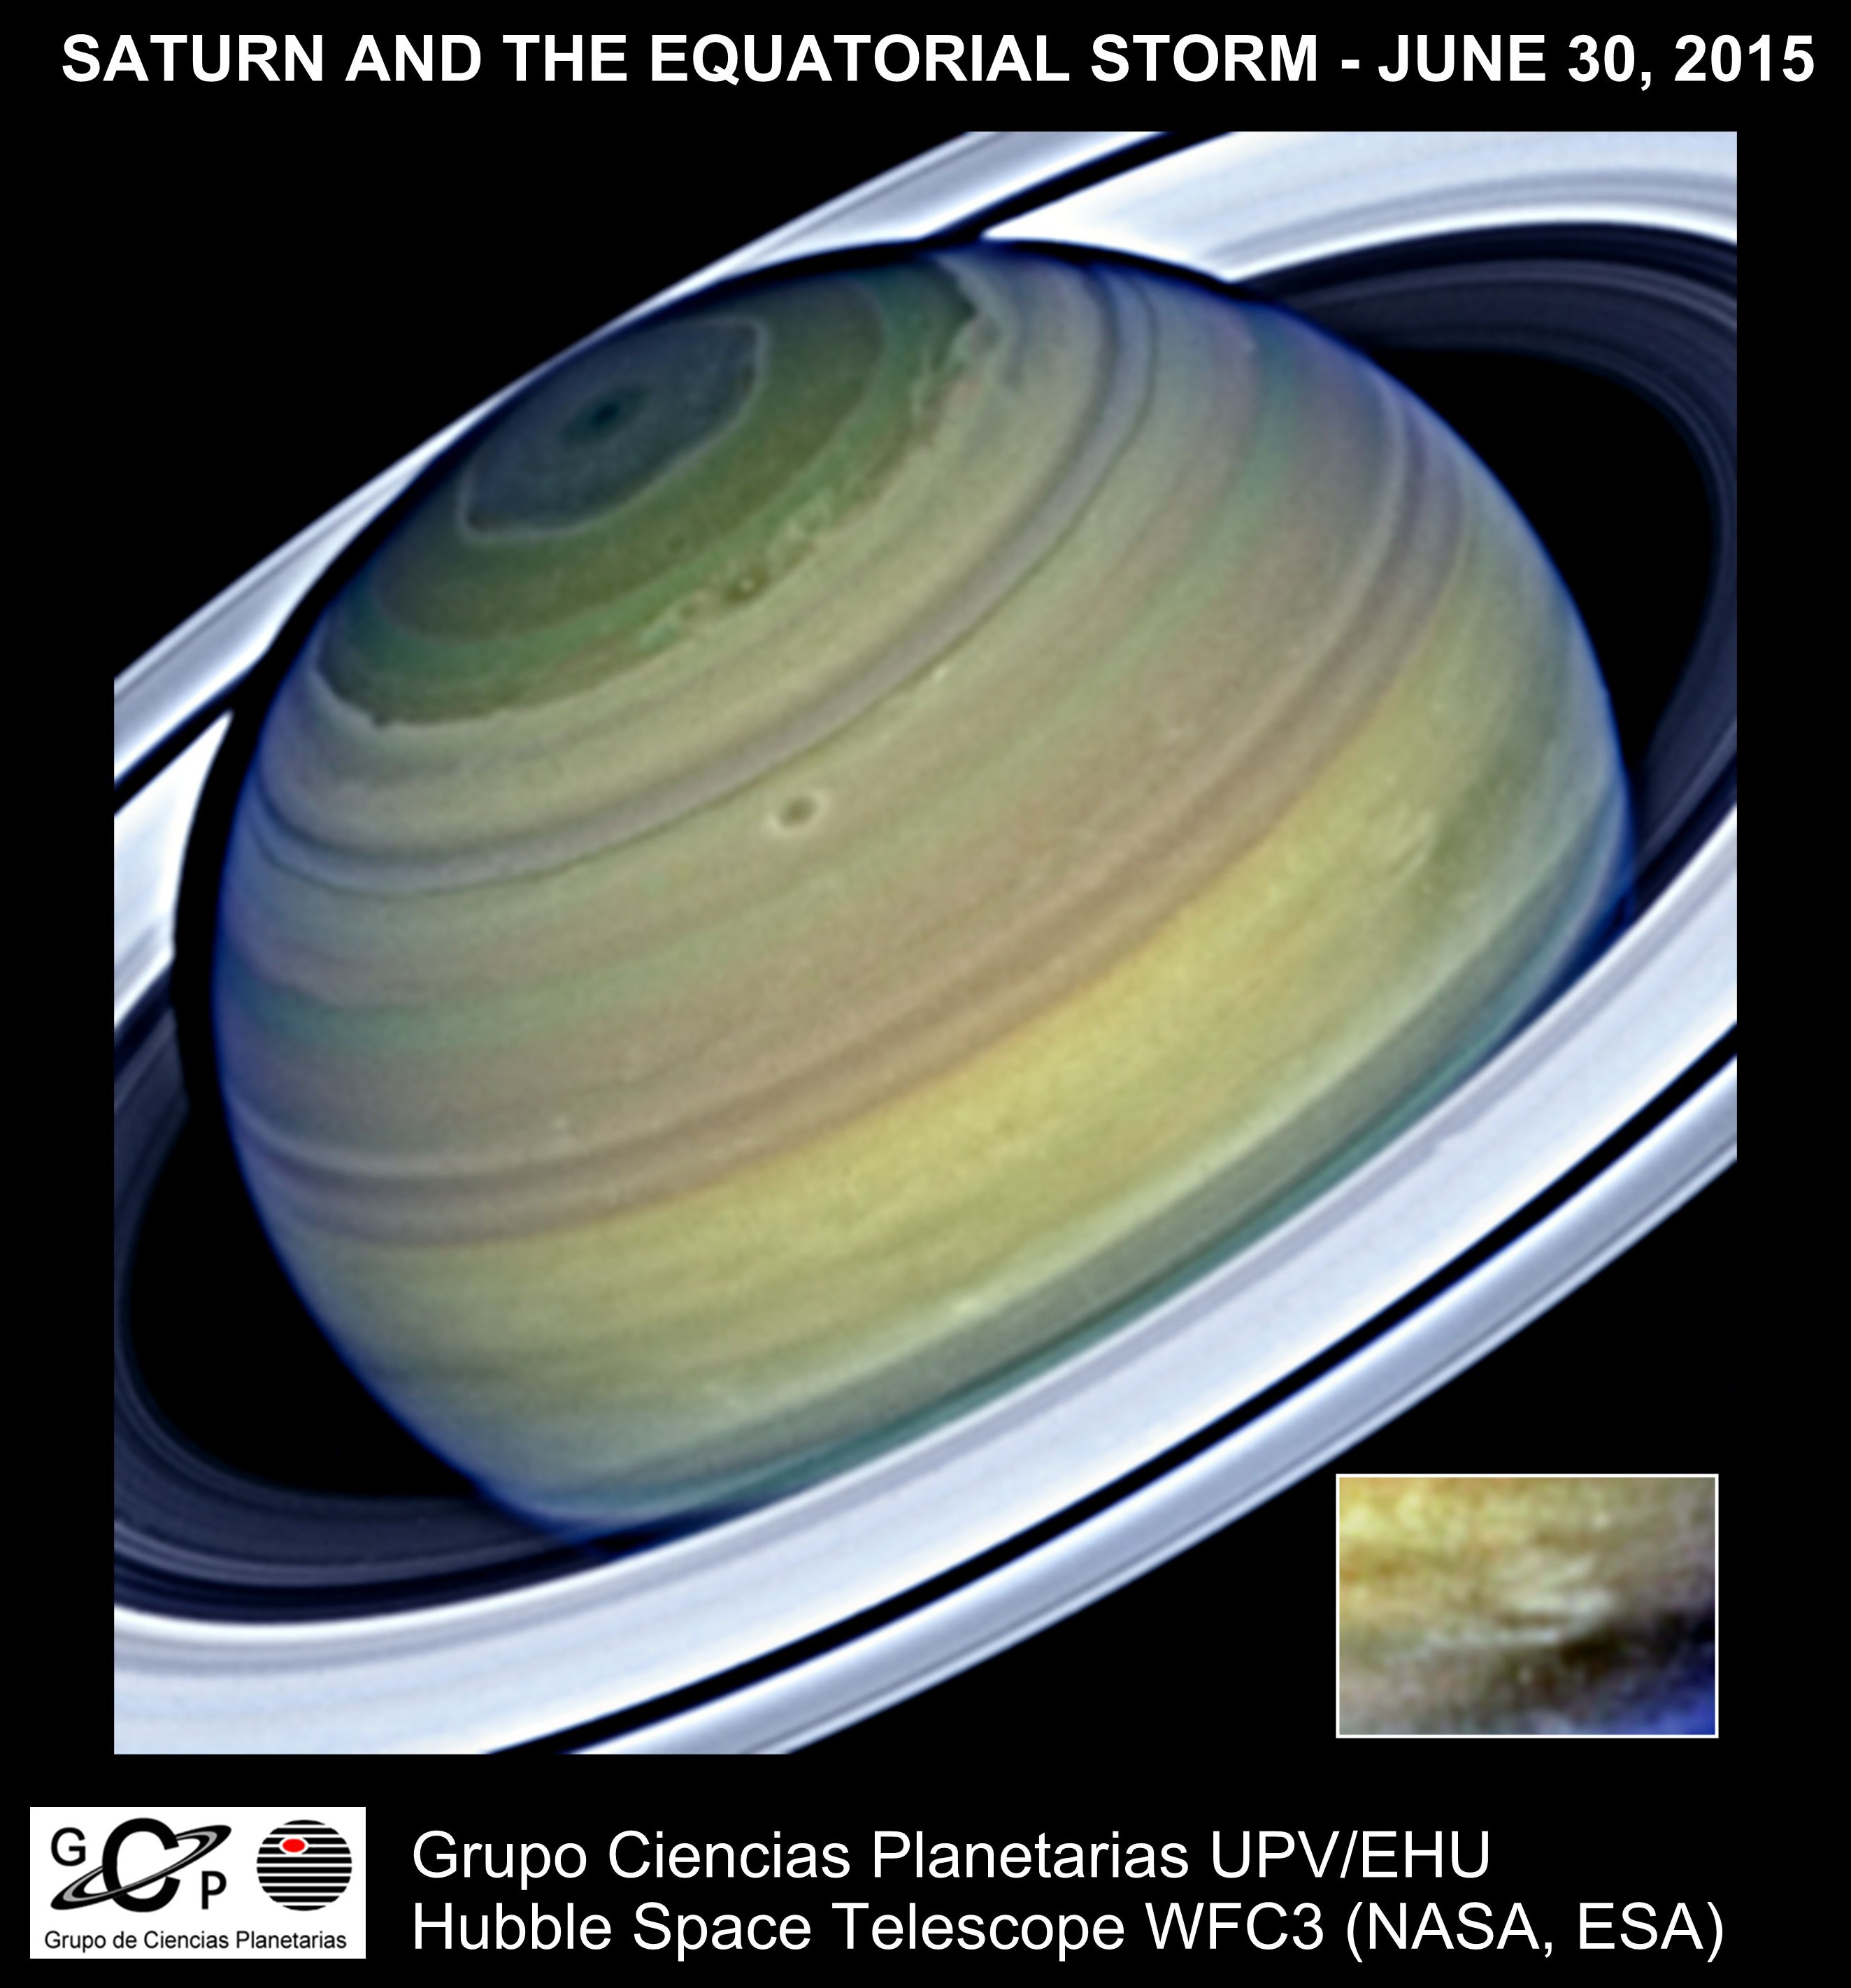 The planet Saturn observed using the Wide Field Camera 3 of the NASA/ESA Hubble Space Telescope on 30 June 2015. The inset box shows the equatorial storm.